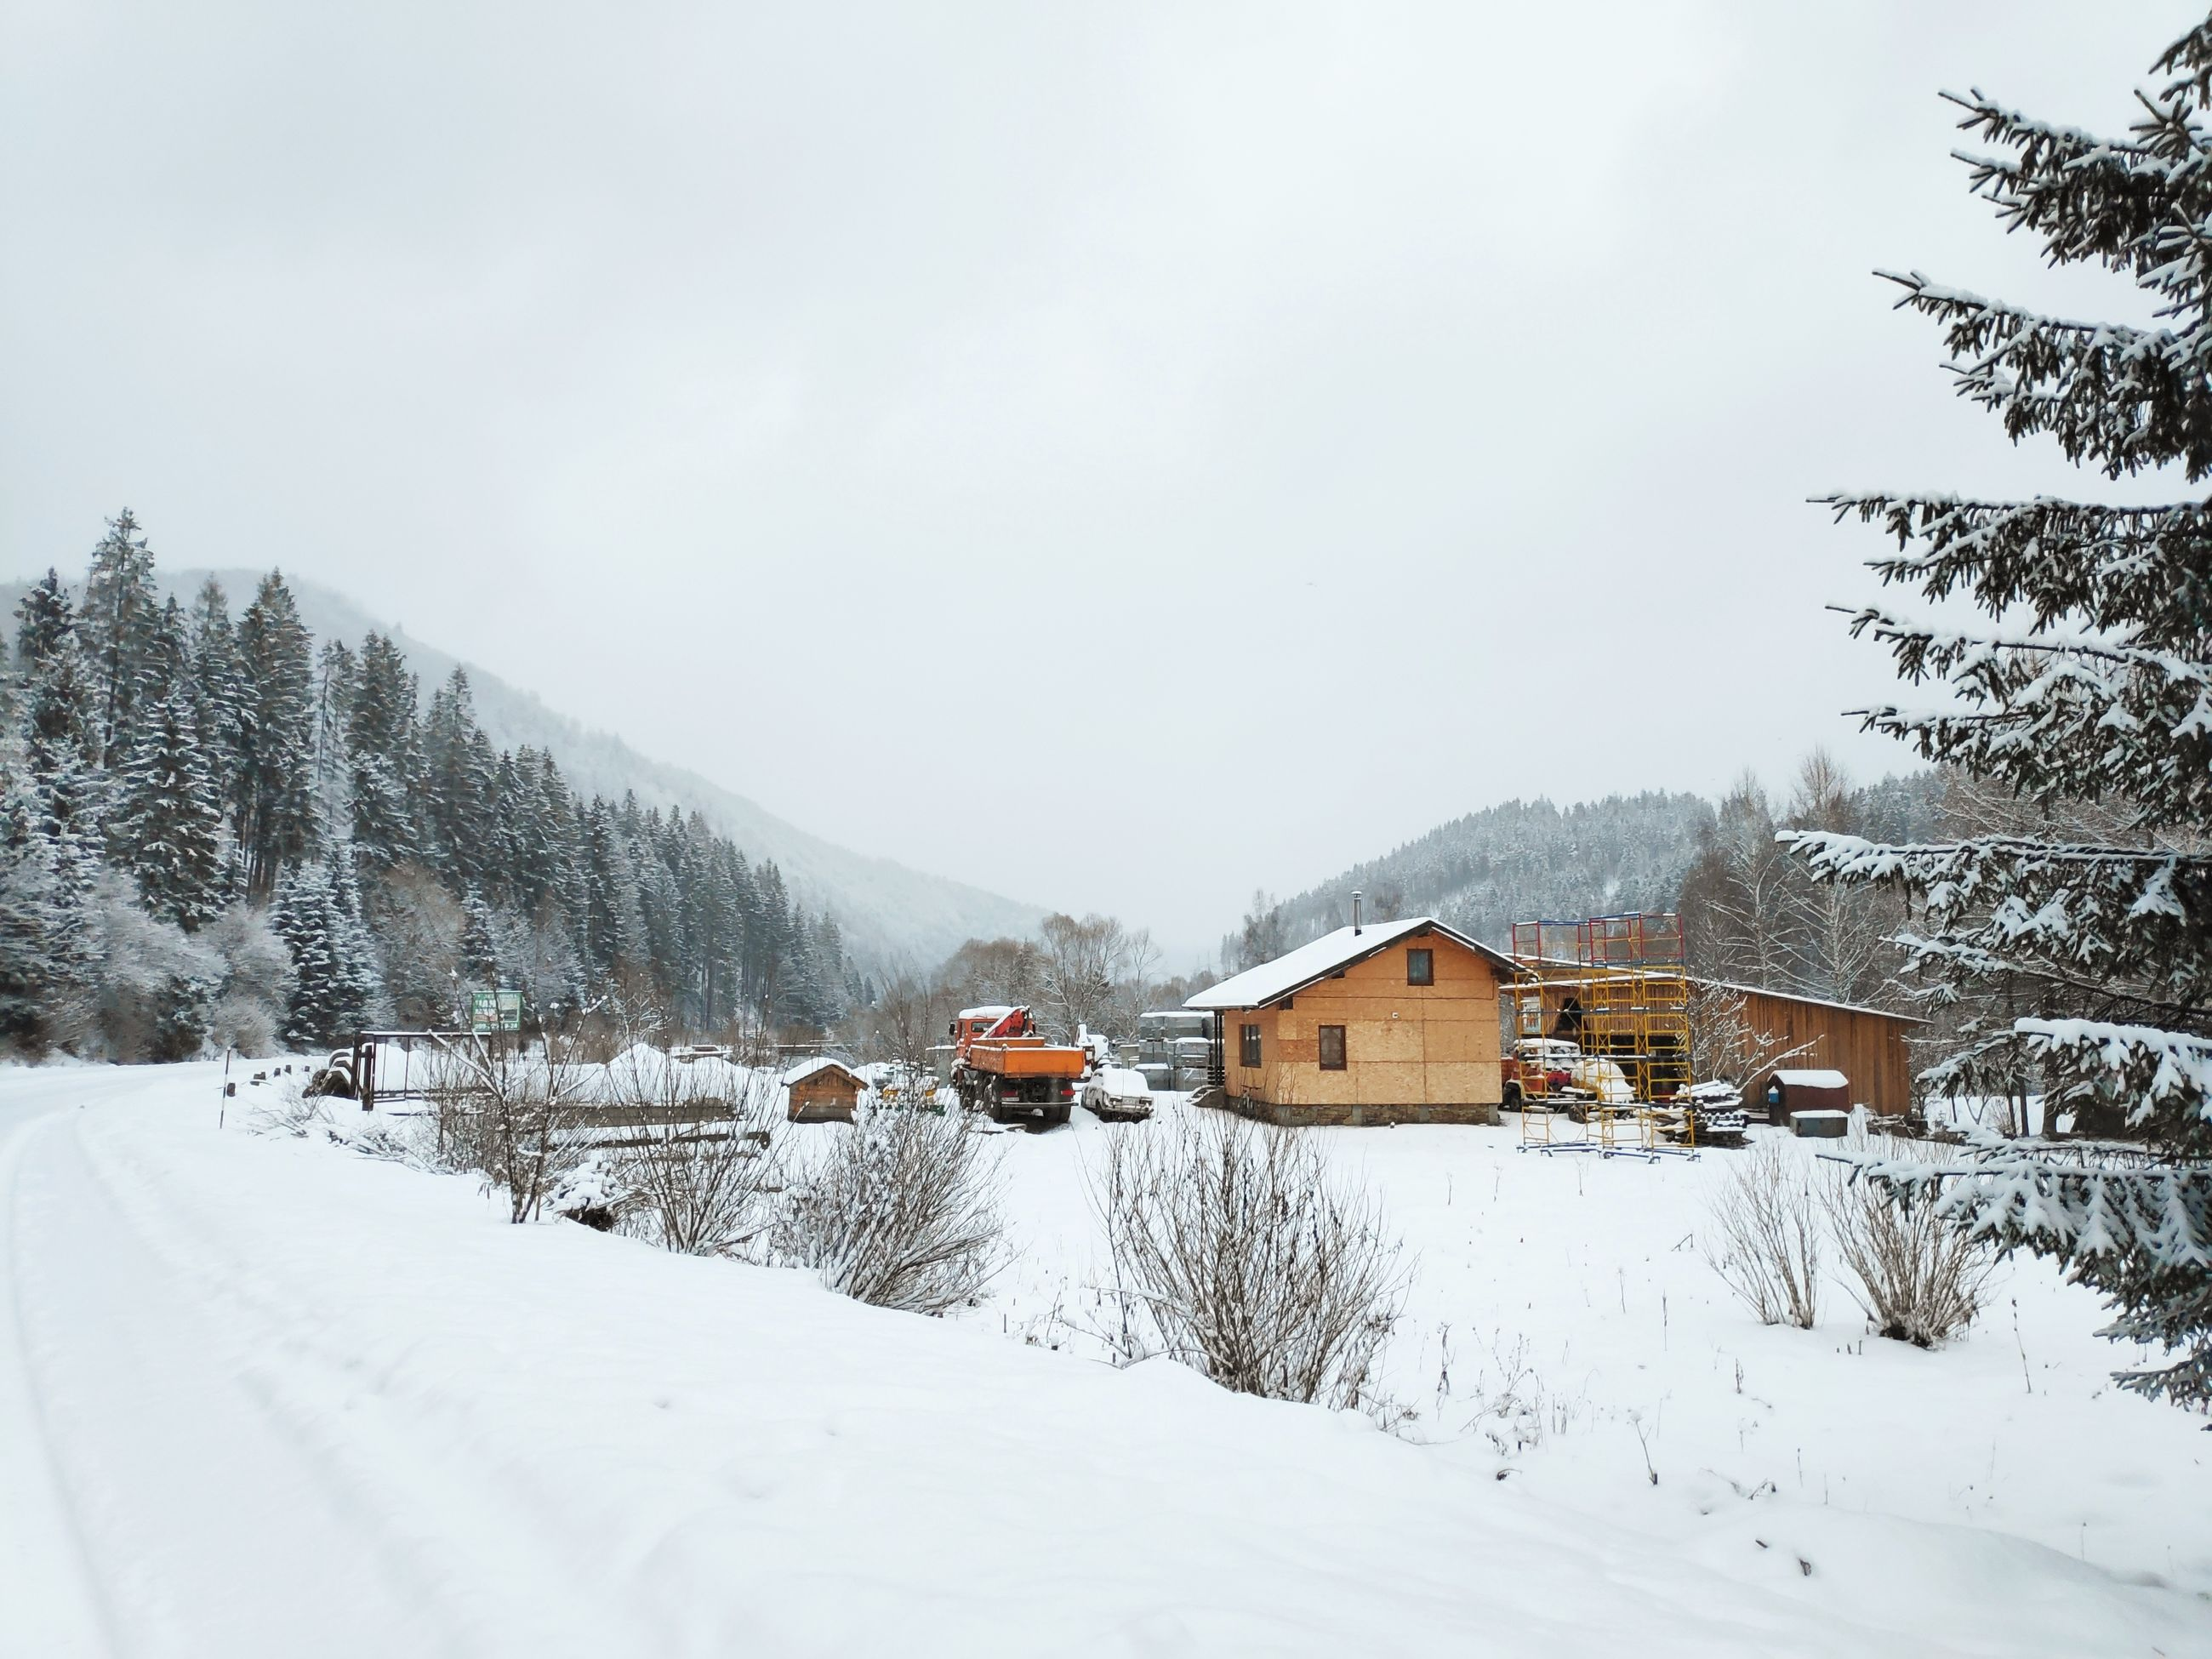 winter, cold temperature, snow, architecture, sky, tree, building exterior, built structure, nature, covering, building, house, scenics - nature, day, plant, transportation, beauty in nature, white color, no people, outdoors, snowcapped mountain, cottage